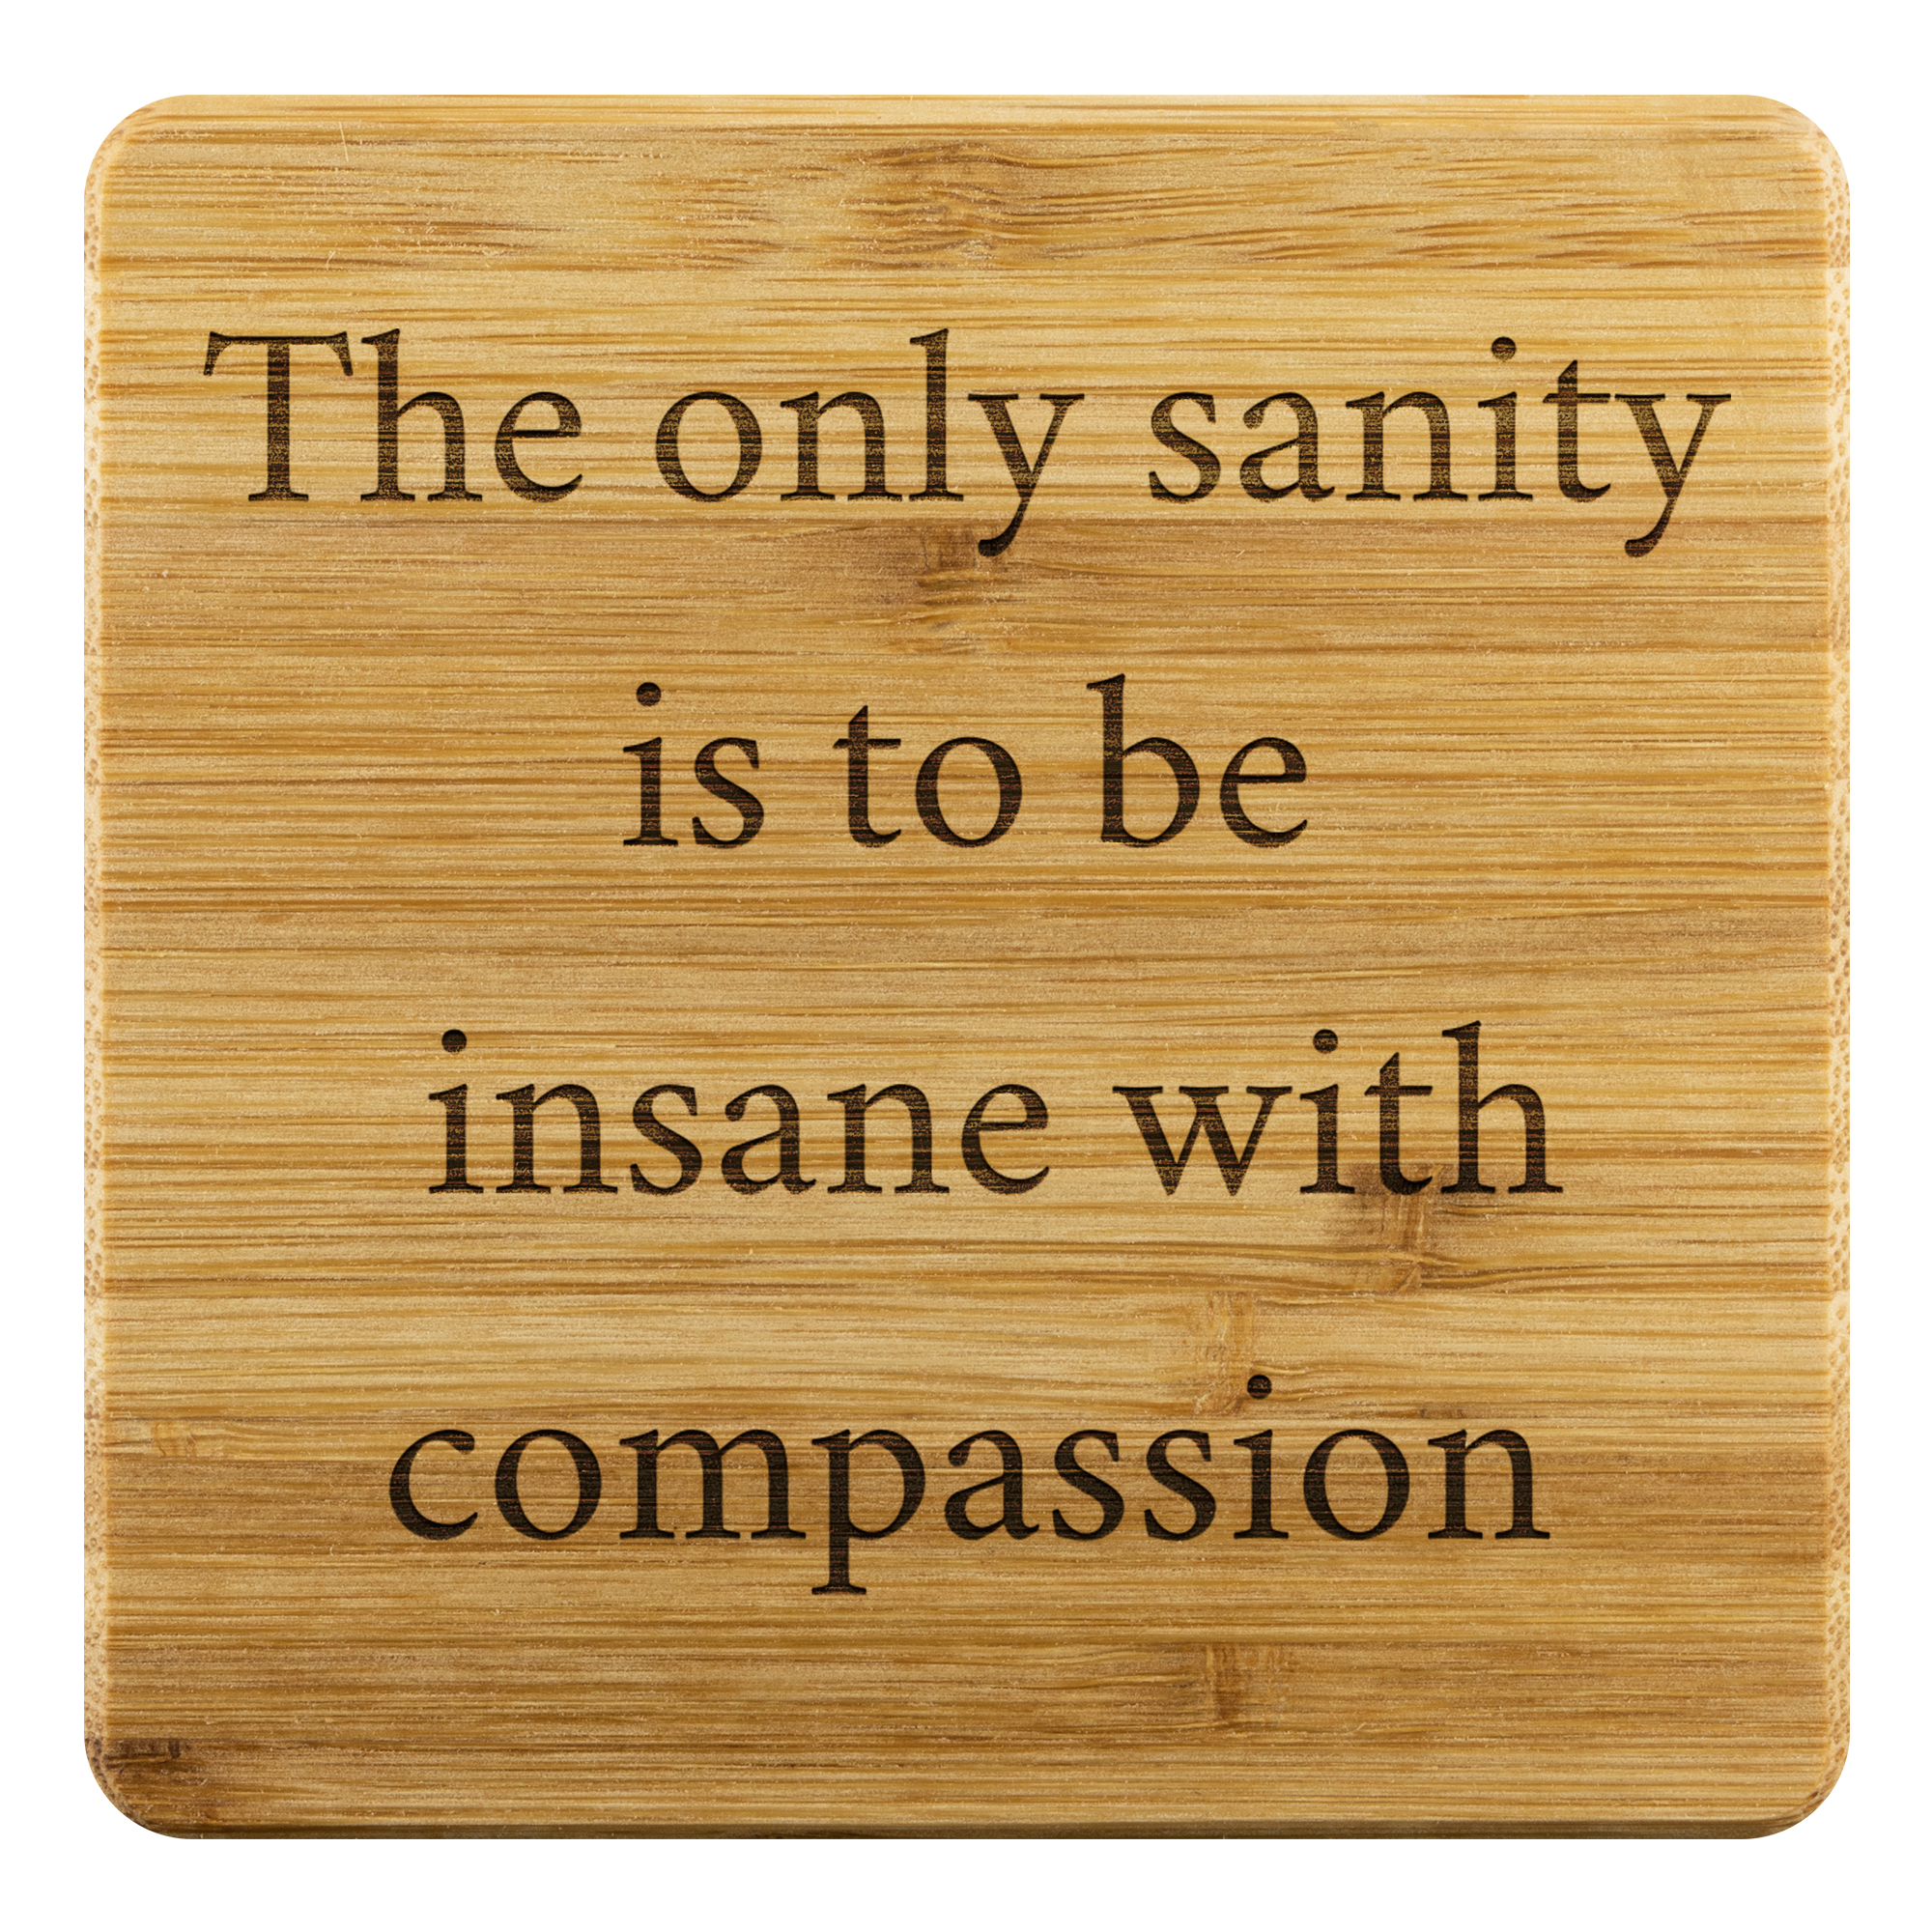 The only sanity is to be insane with compassion